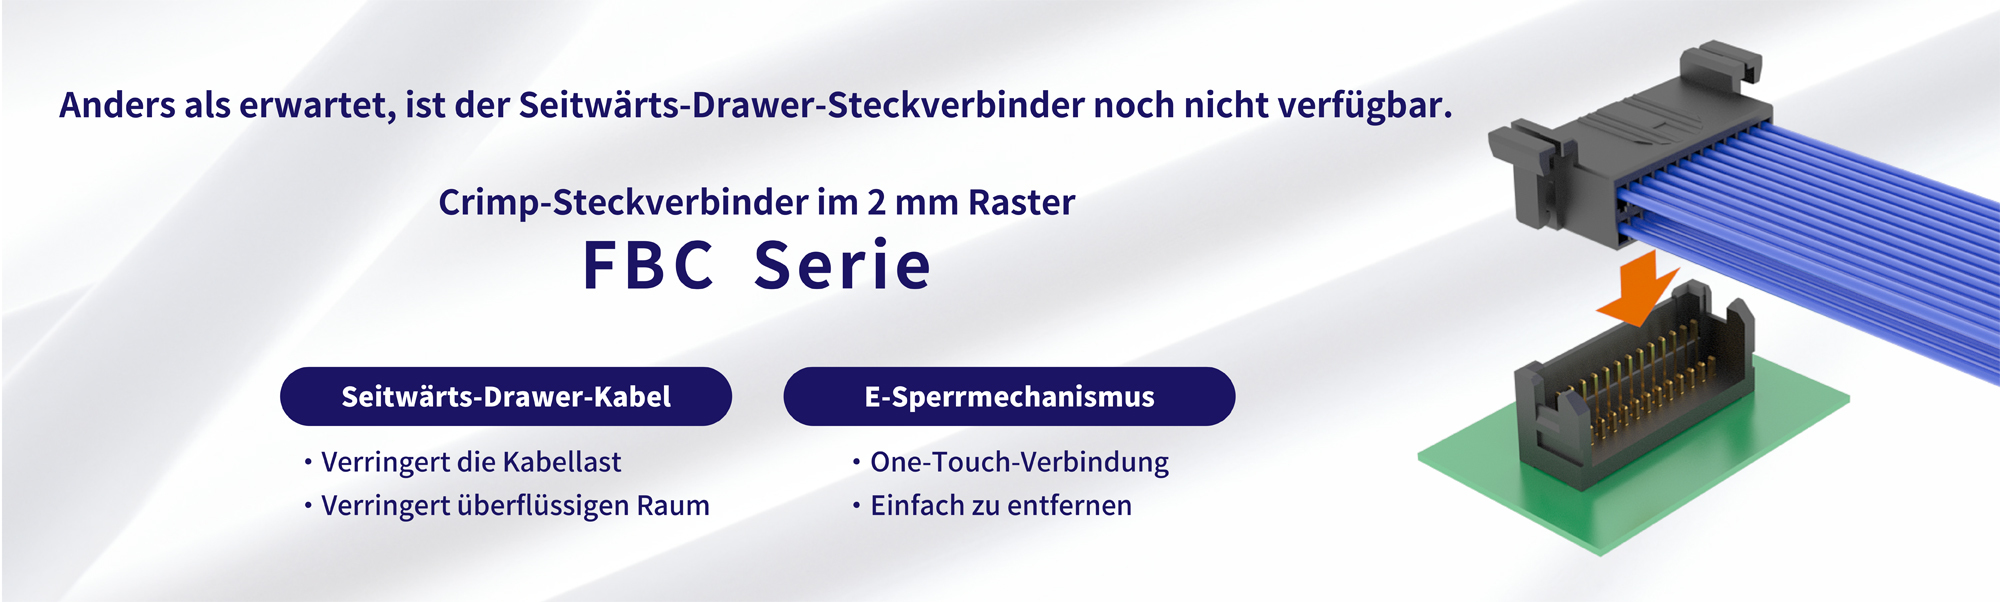 FBC SLIDER (GERMAN)